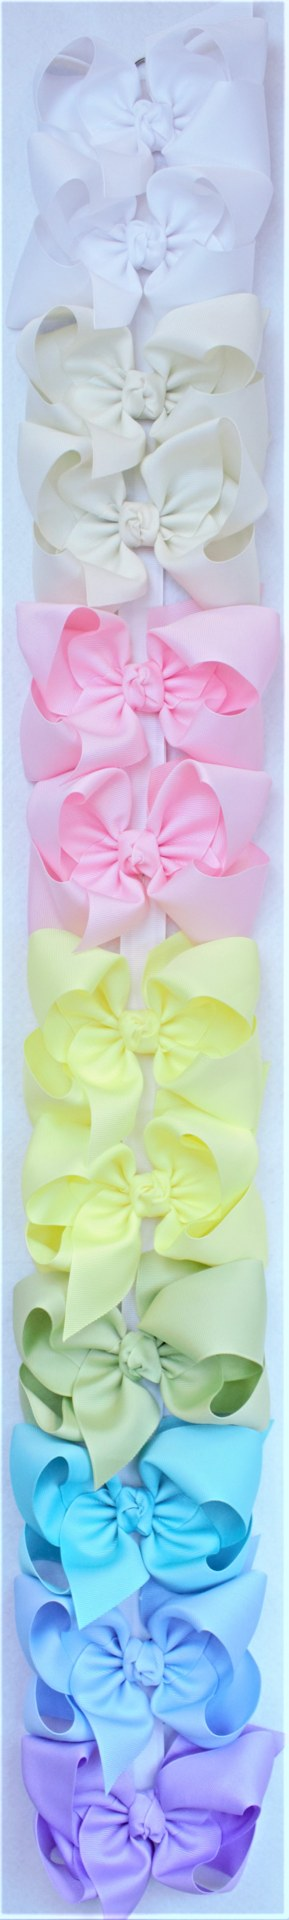 "Set of 12 Bows 2.25"" GROS., 5.5'' XL BOW W/ KNOT ON ALLIGATOR CLIP--PASTELS"